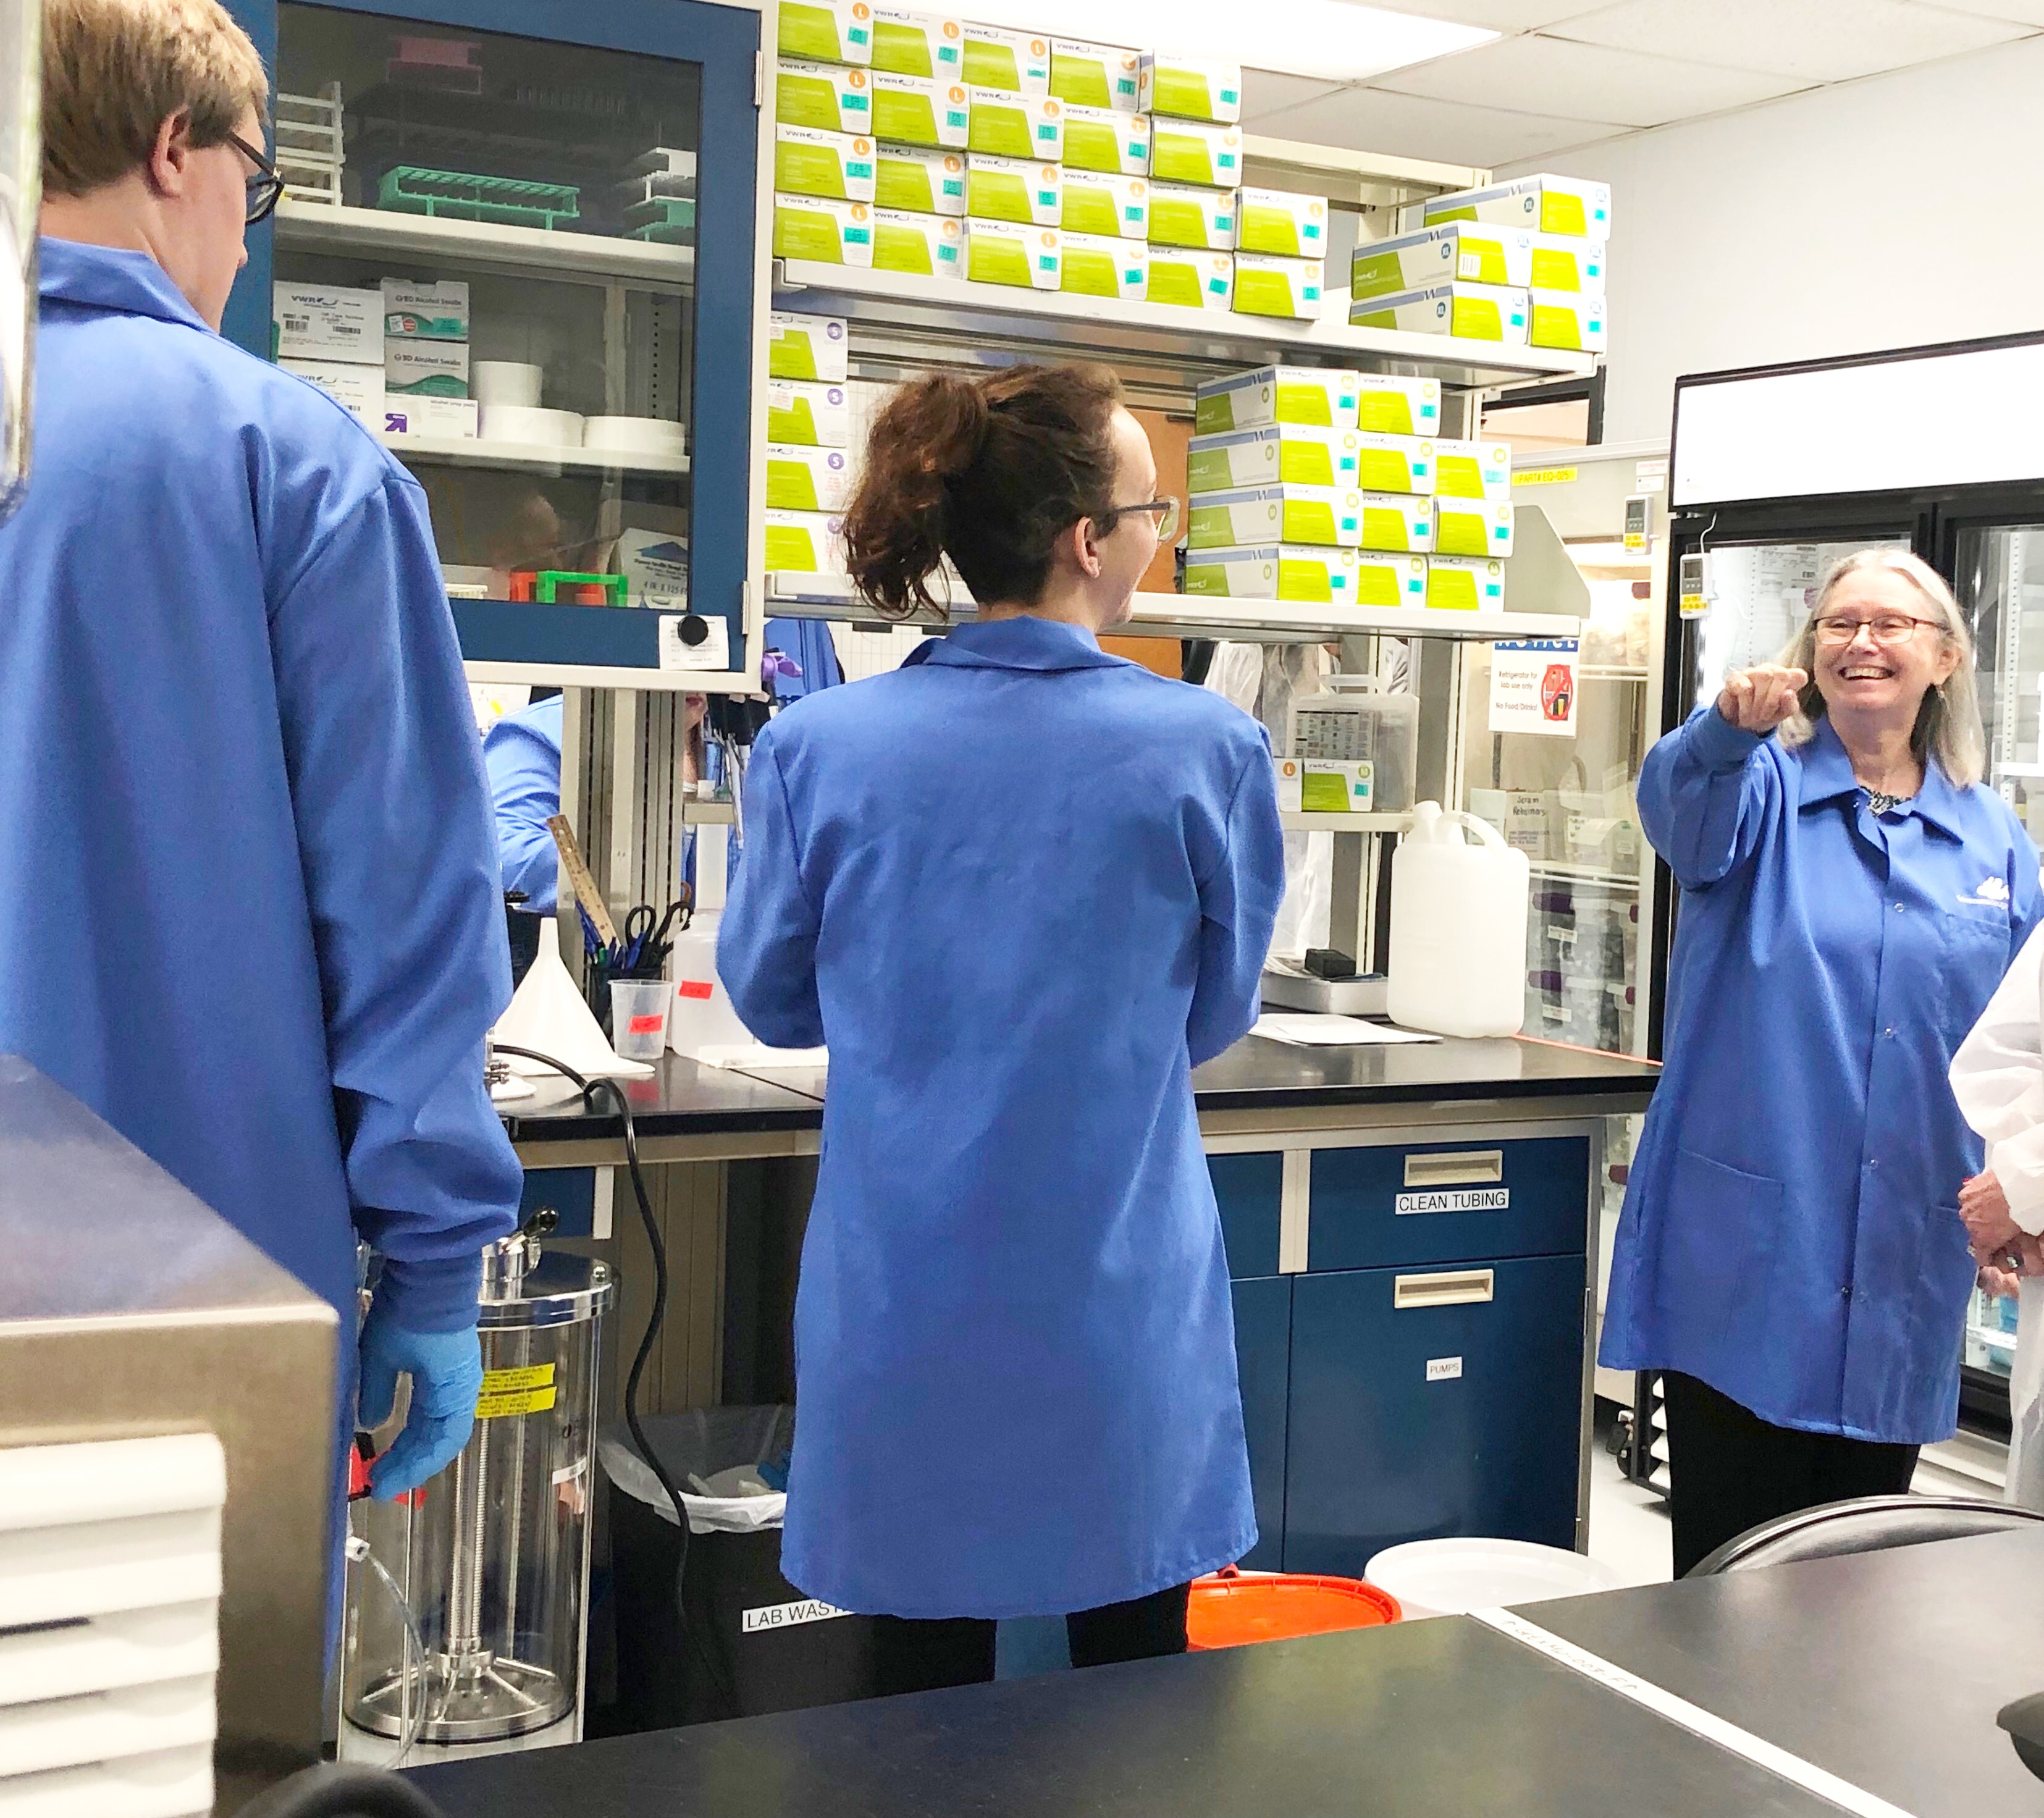 EDPNC Trade Support Helps ImmunoReagents Increase Foreign Sales